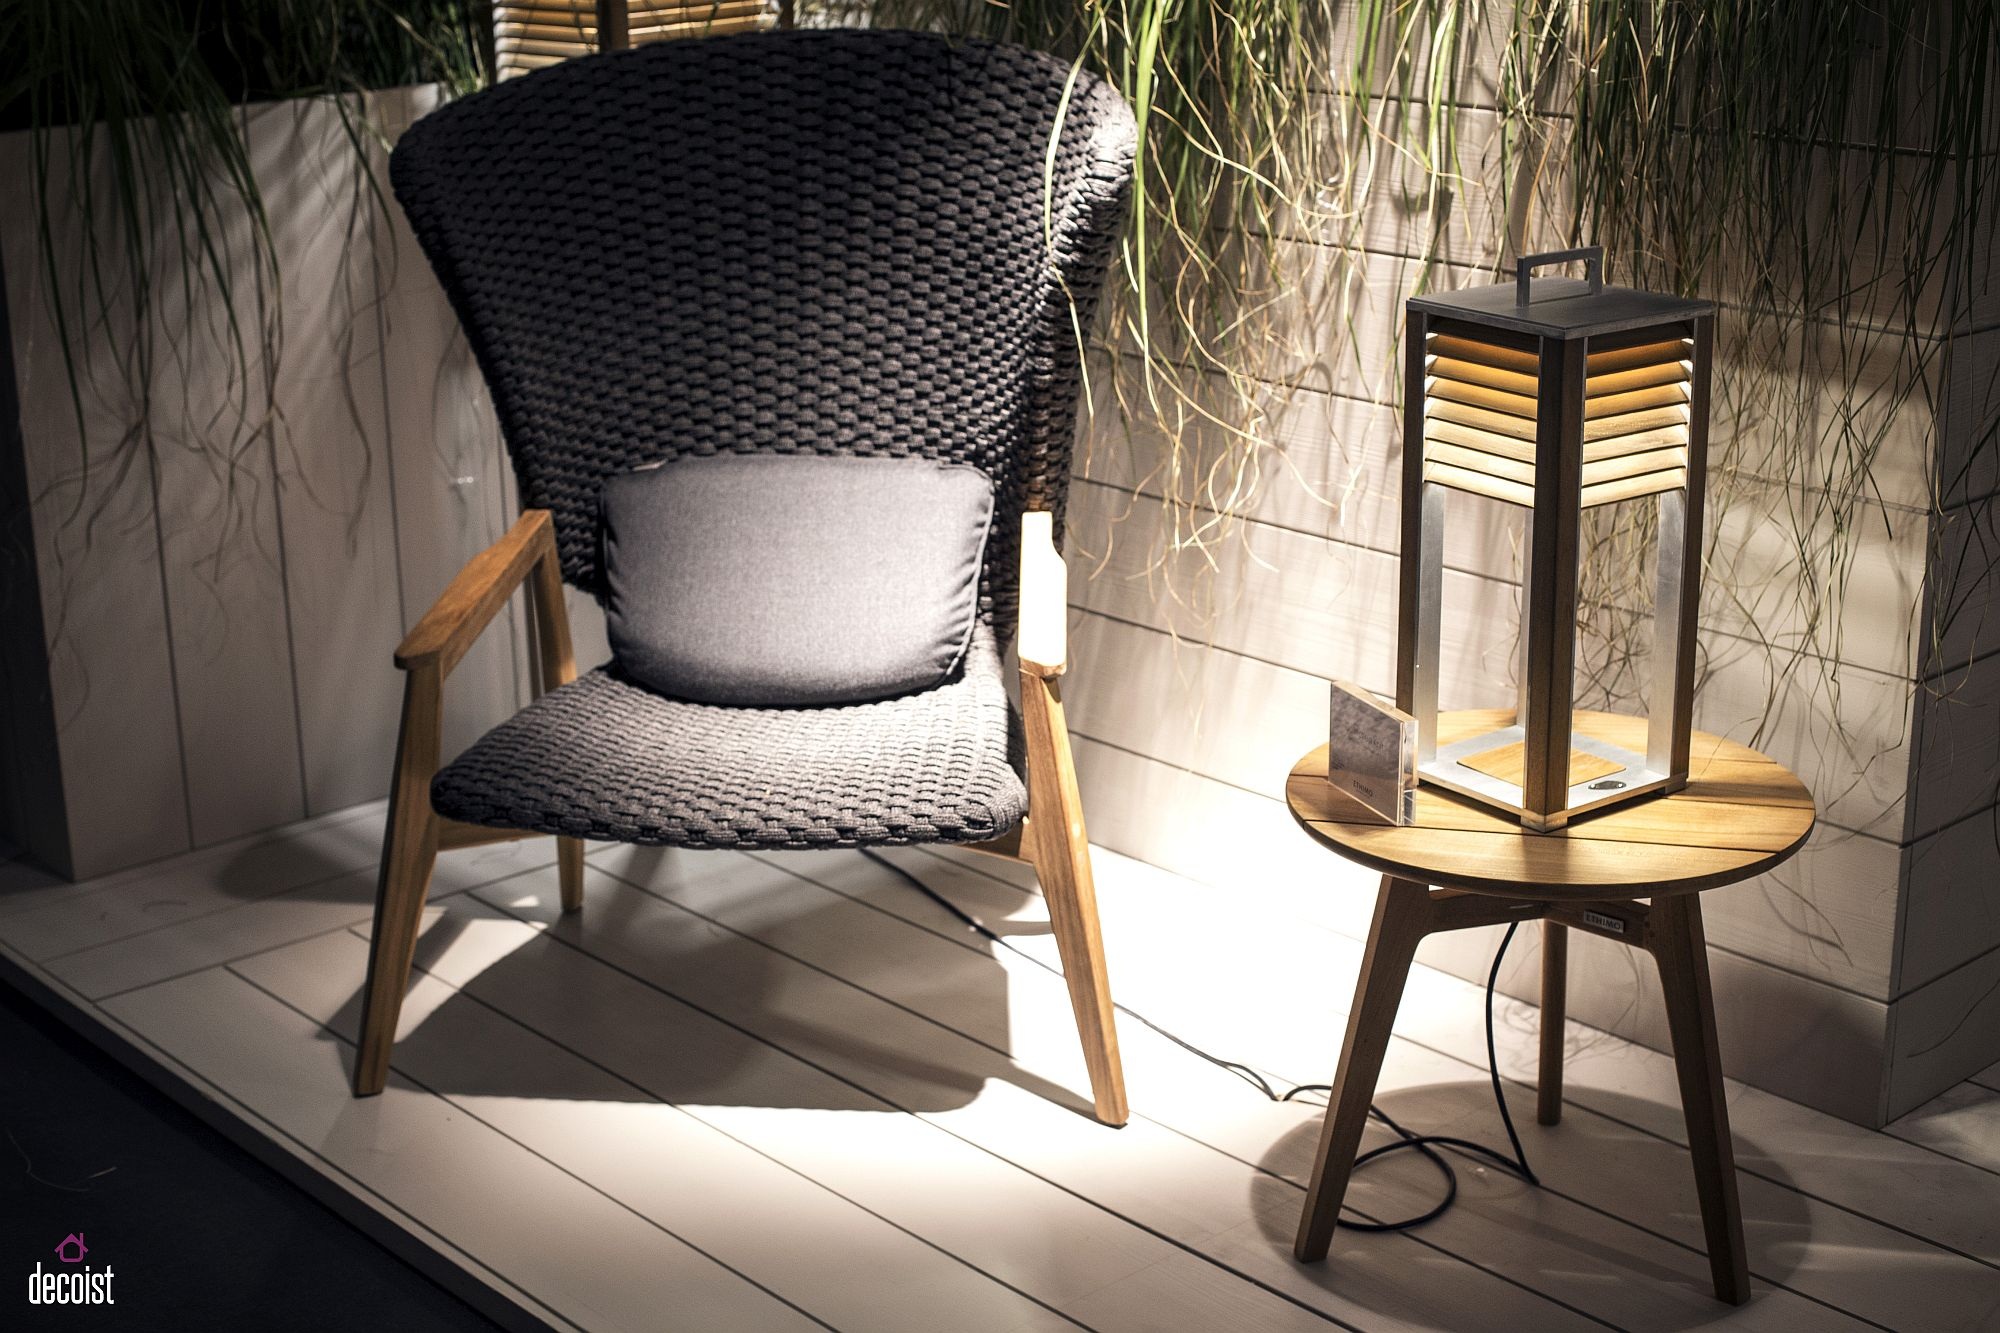 Ethimo brings a series of outdoor decor and smart lighting